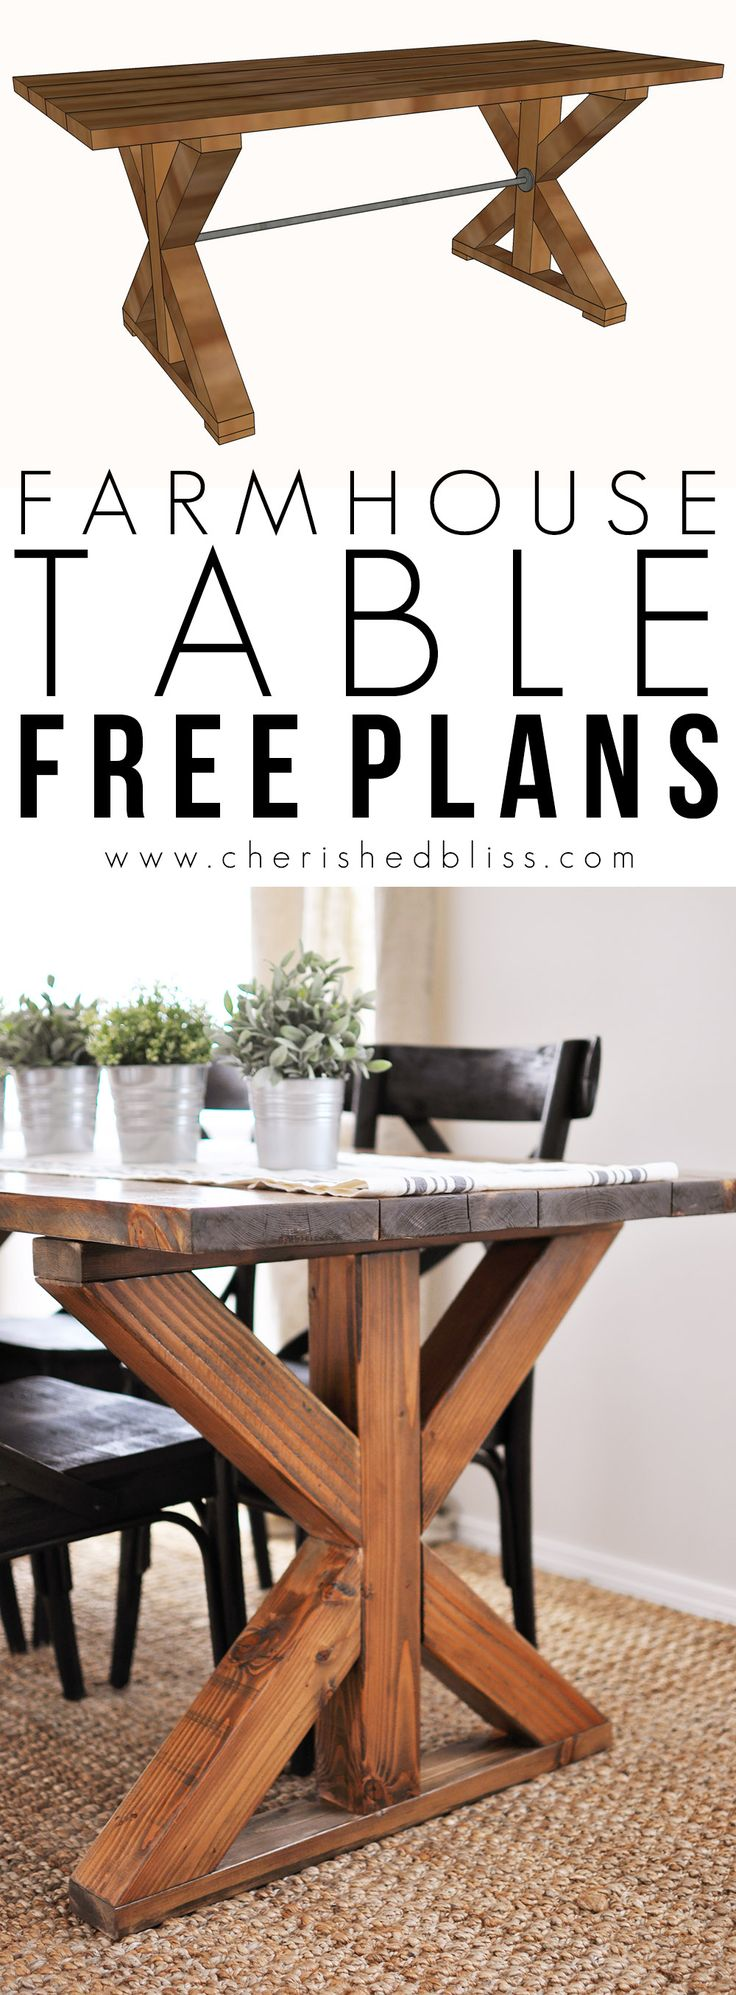 best patio table images on pinterest furniture bricolage and